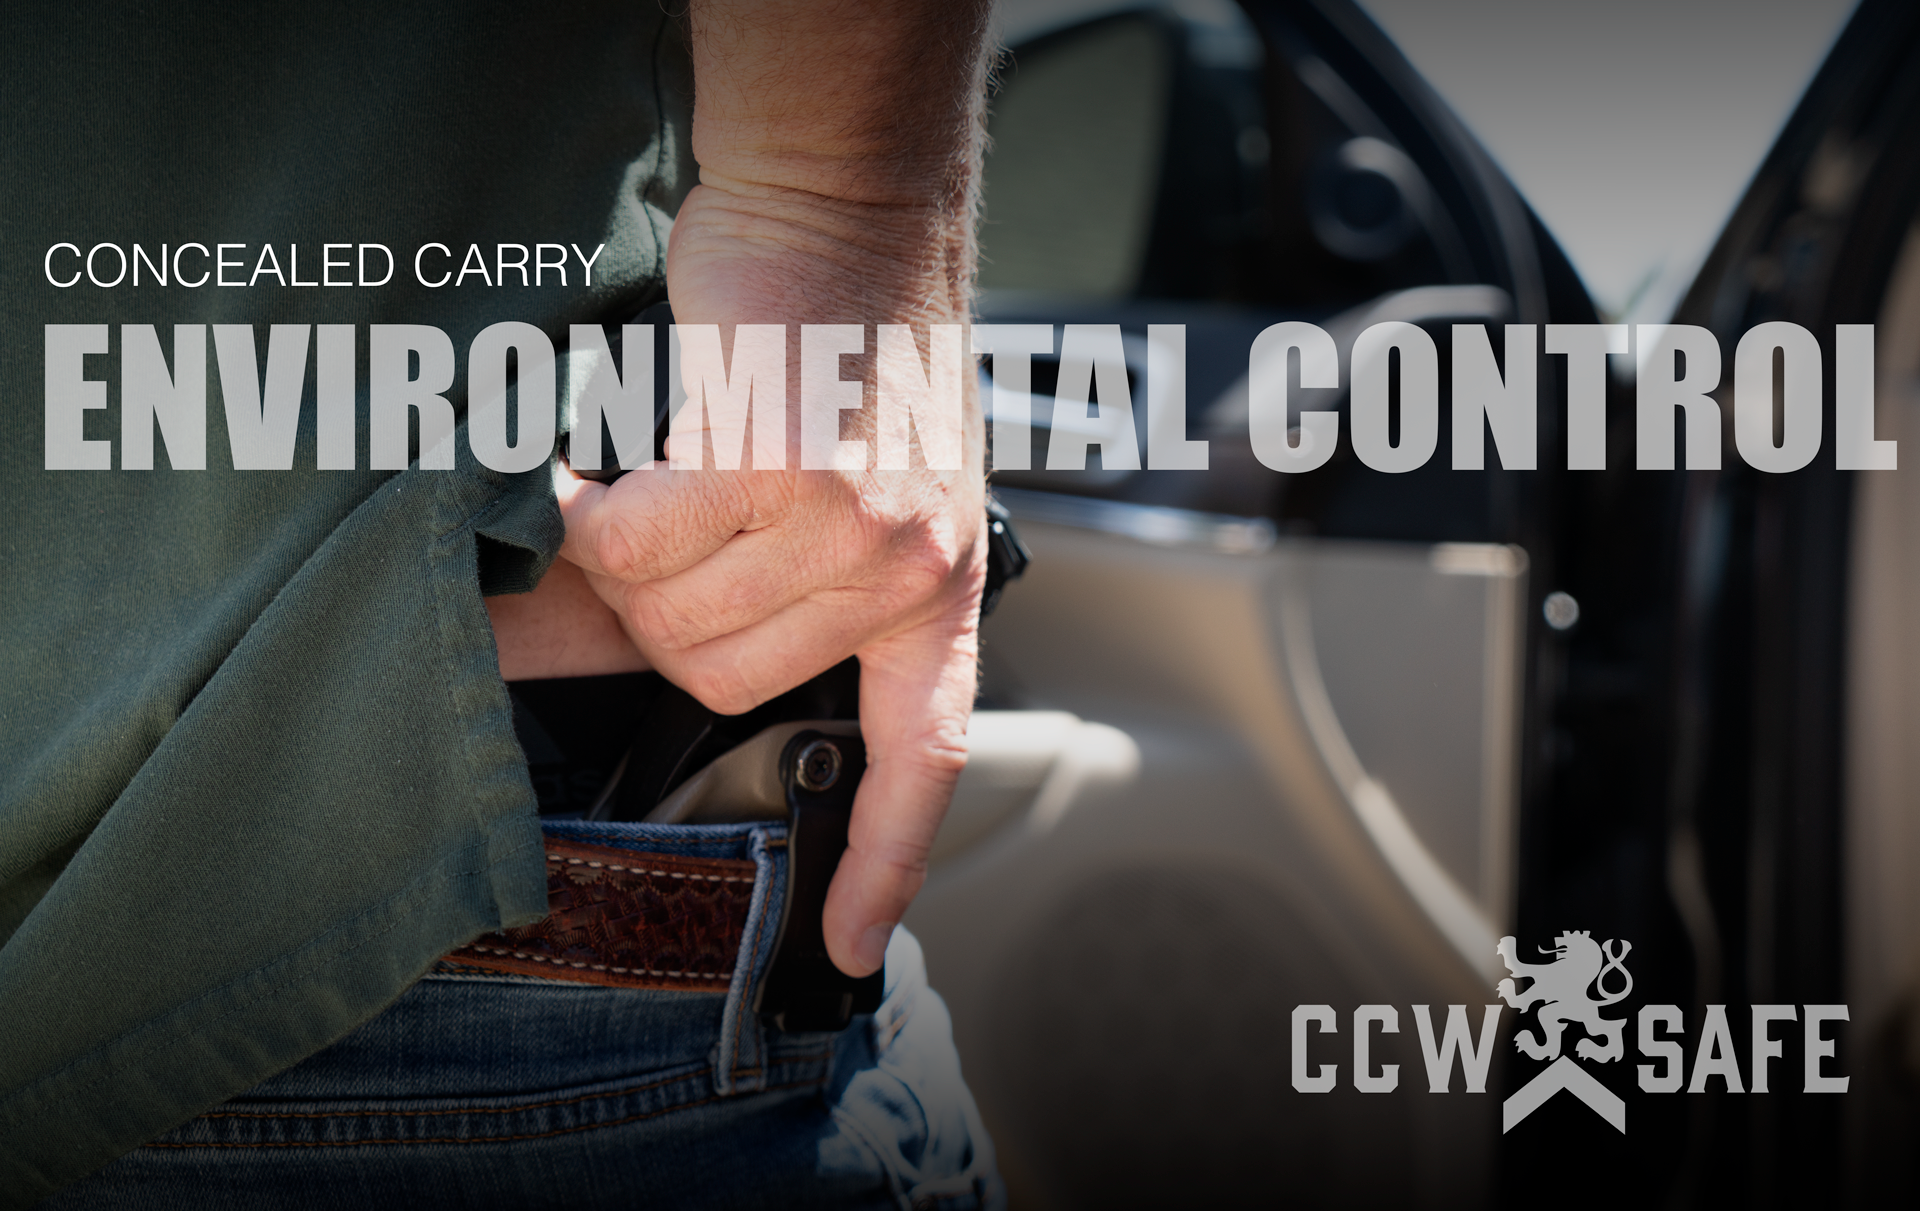 Another Common Mistake That Gets Concealed Carriers In Trouble